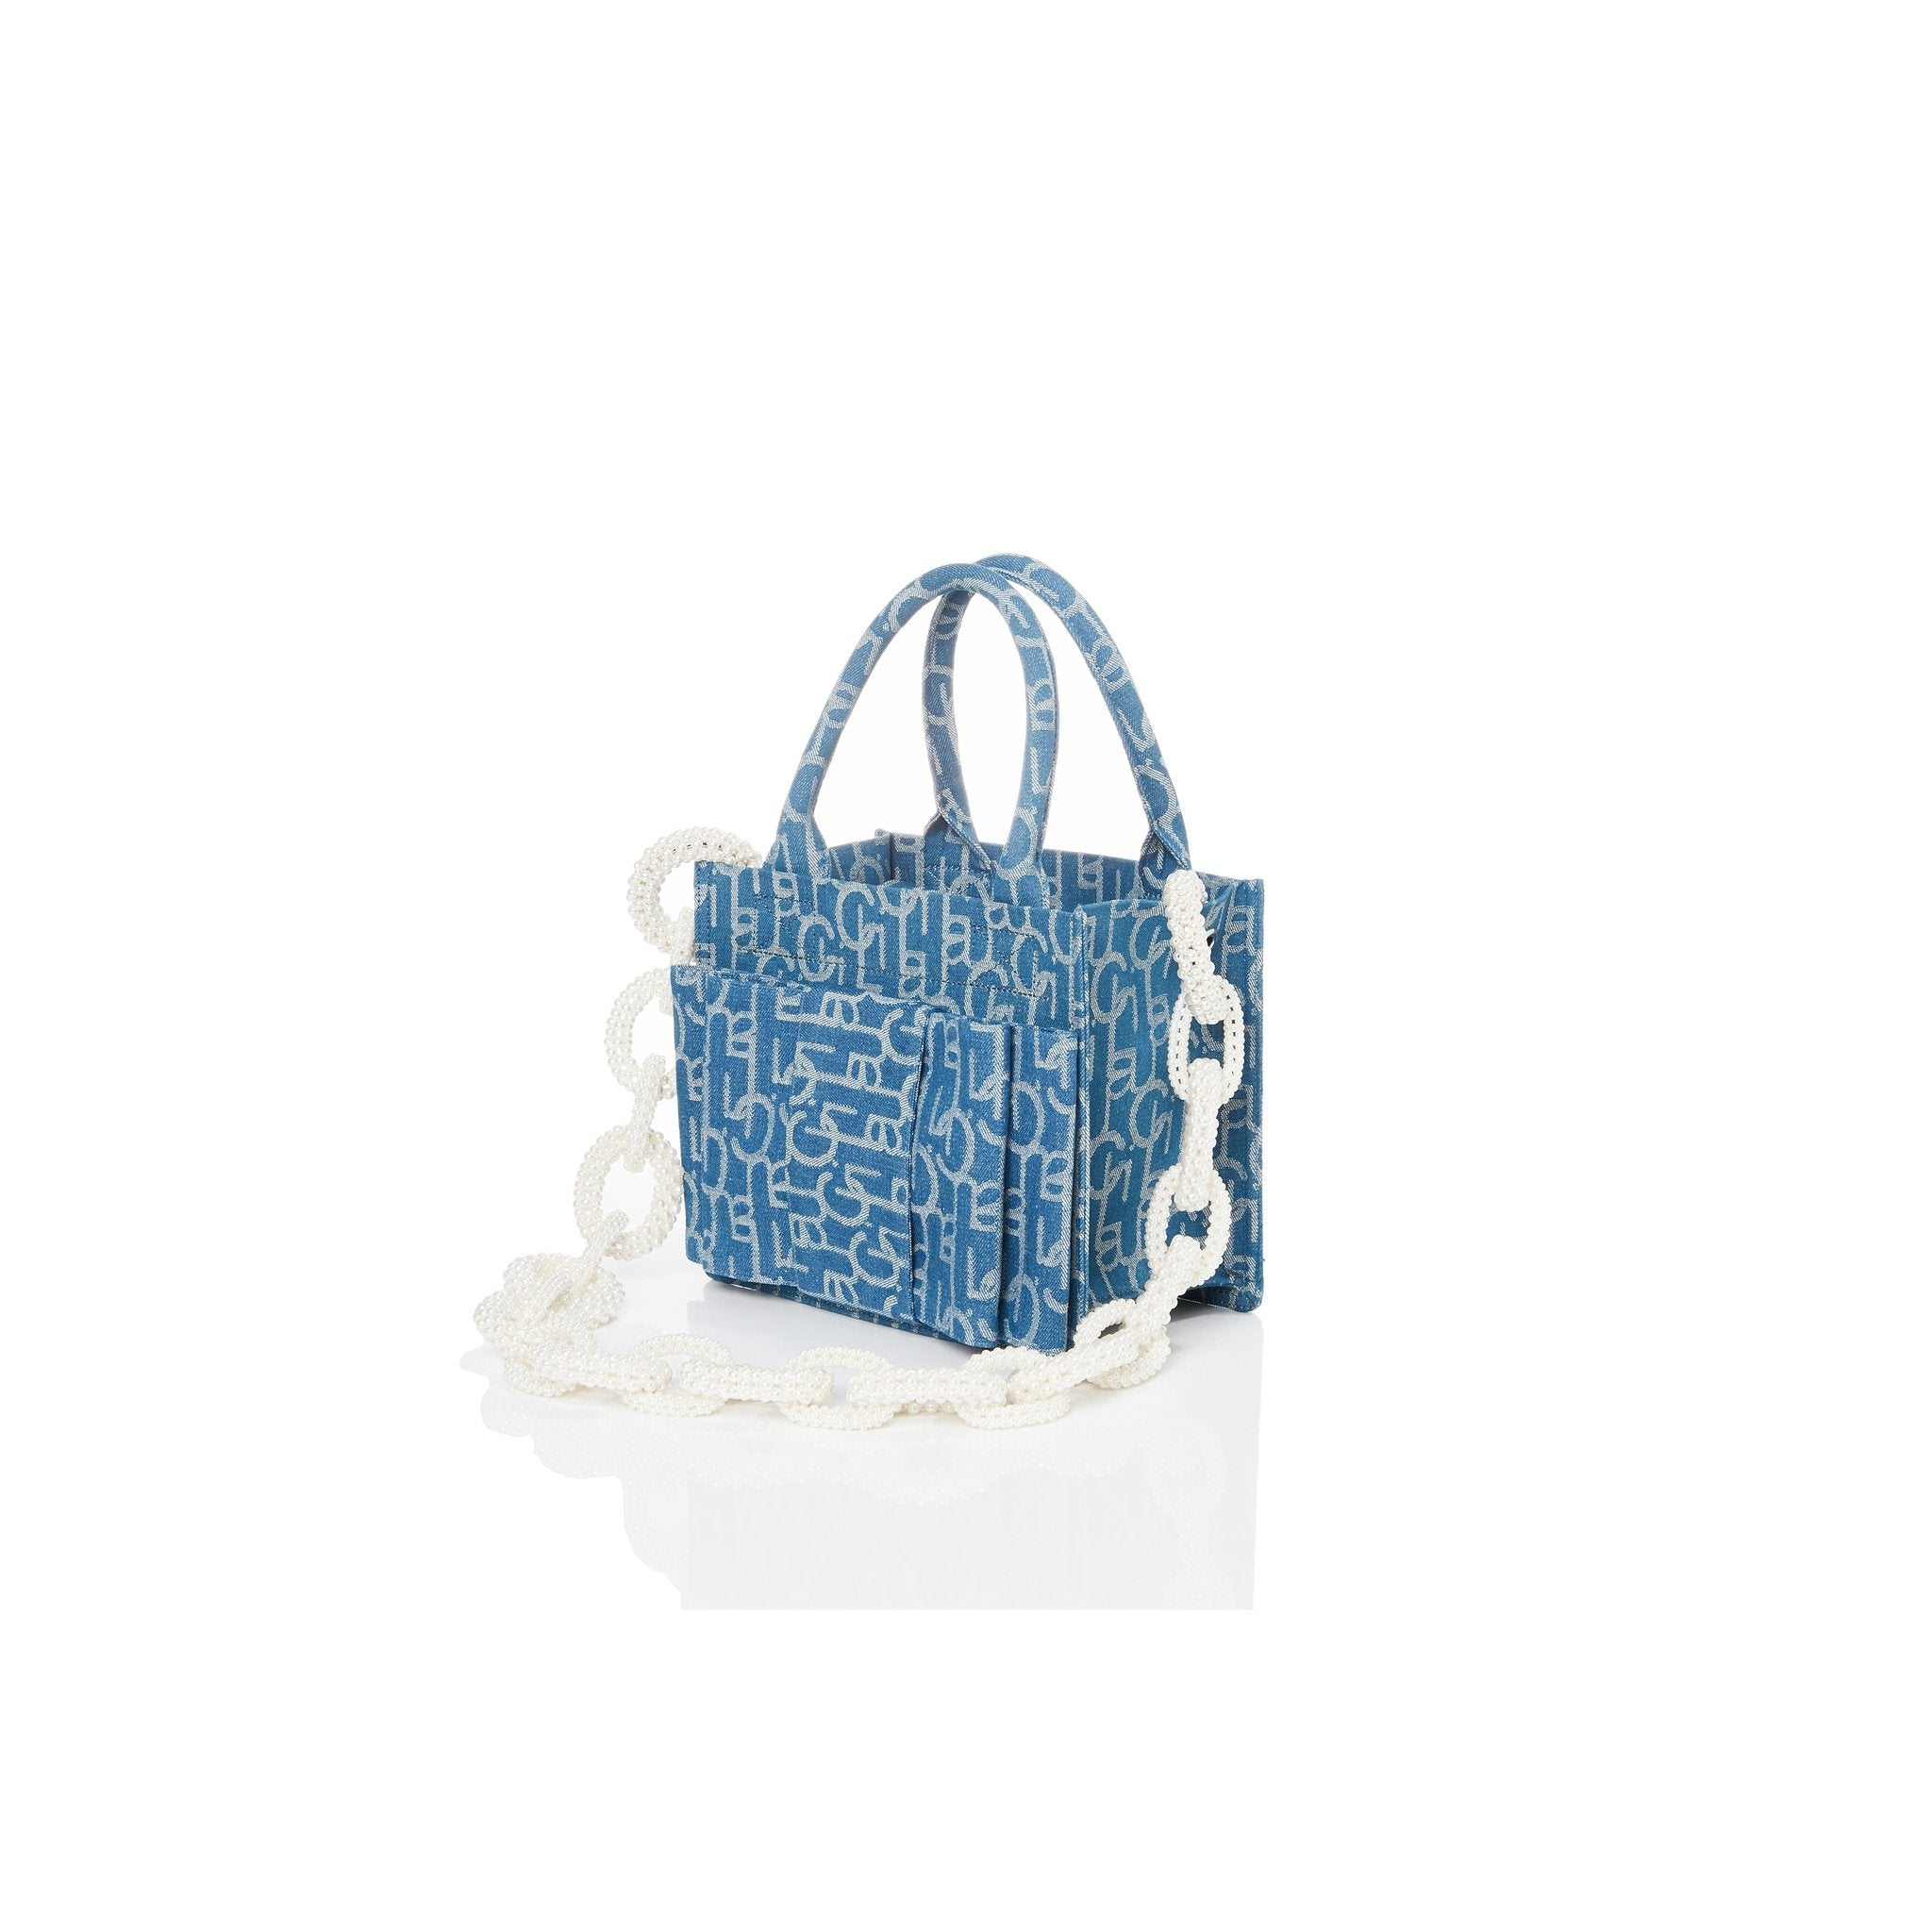 Laurence & Chico Bowtie Laulau Chichi Jacquard Small Square Tote | MADA IN CHINA